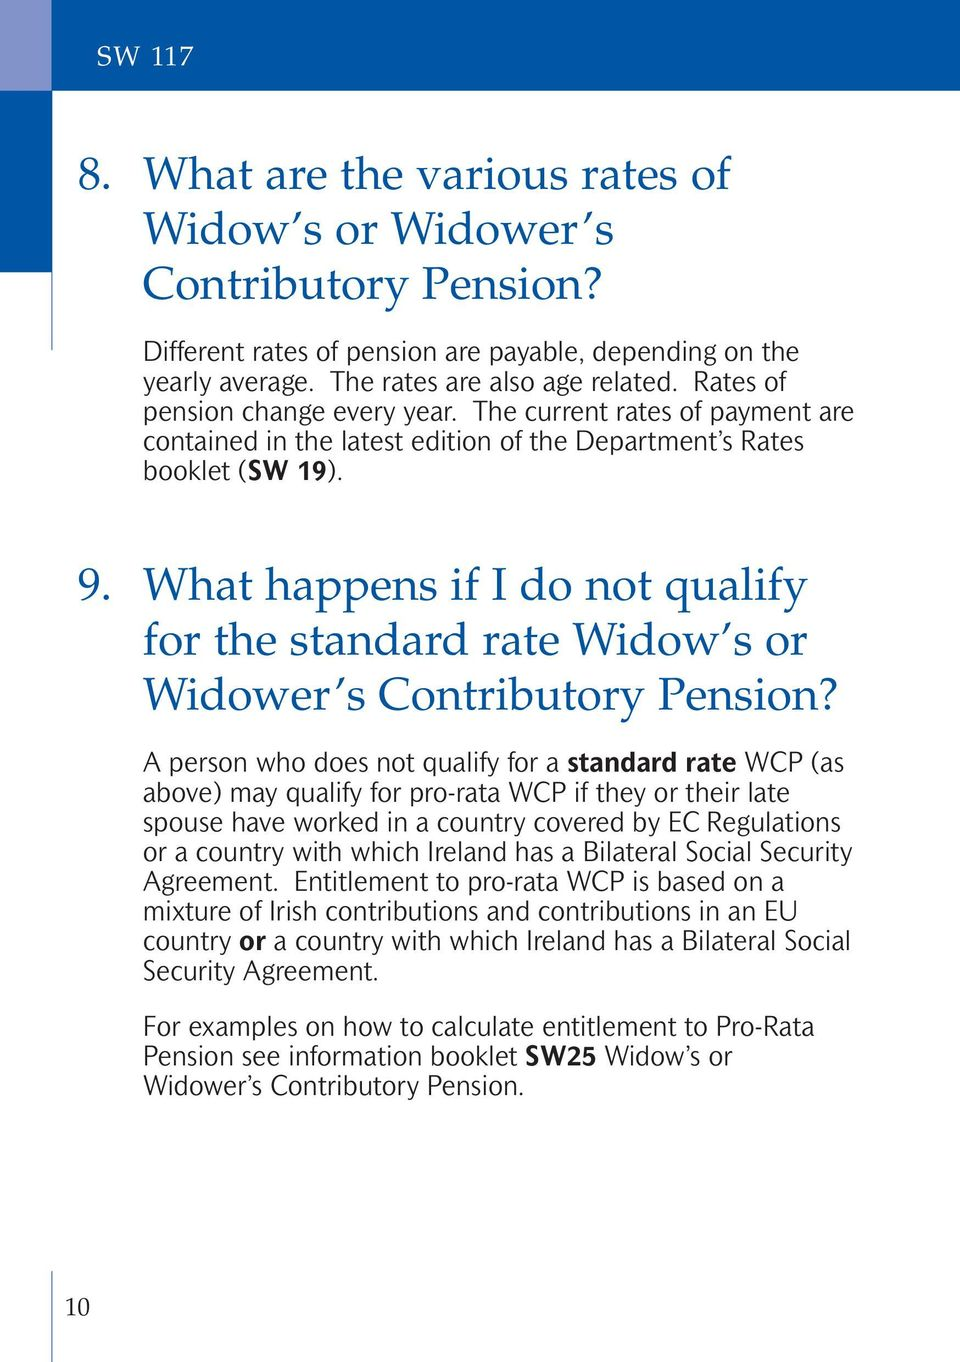 What happens if I do not qualify for the standard rate Widow s or Widower s Contributory Pension?